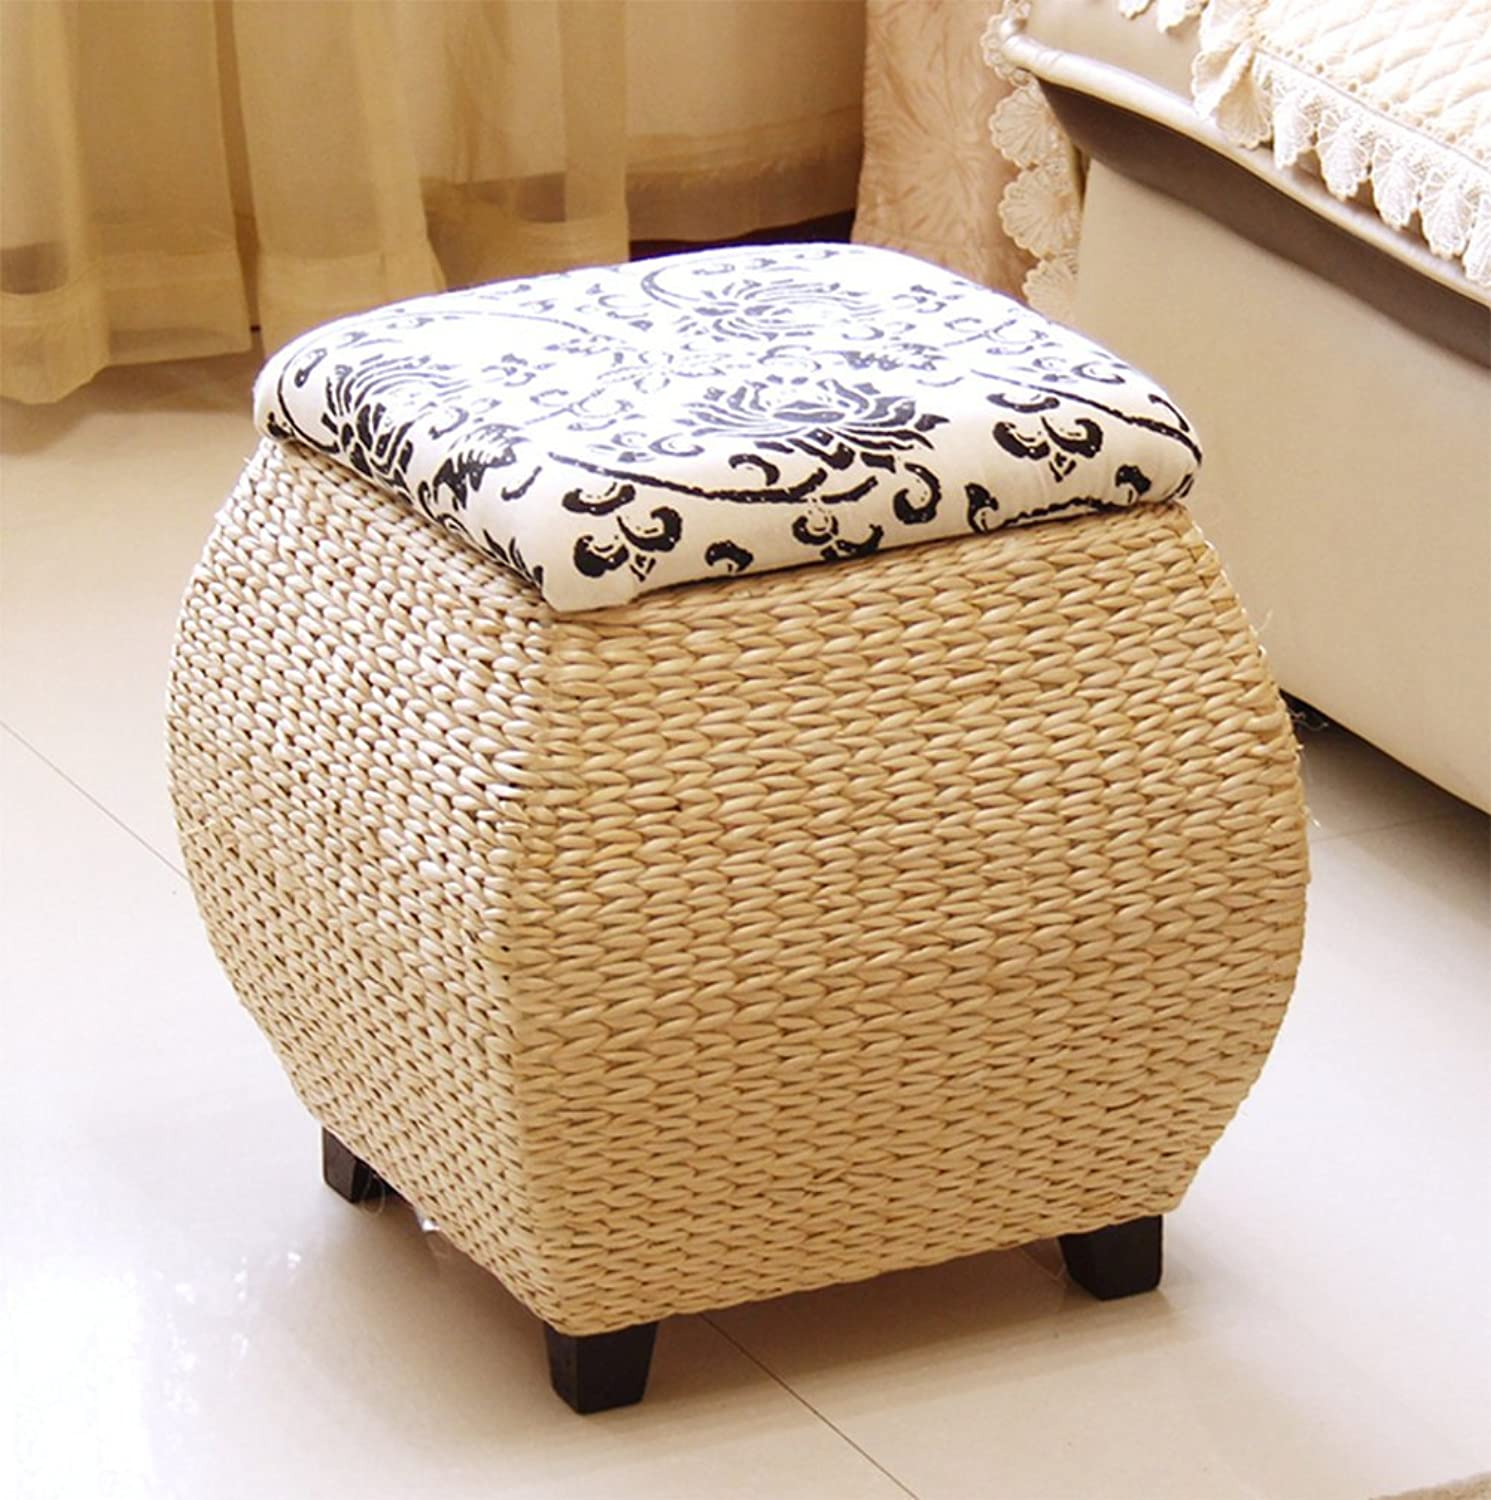 Handmade Rattan Storage Stool, Storage Container Bamboo Stool, Multi-Purpose shoes Stool,Black